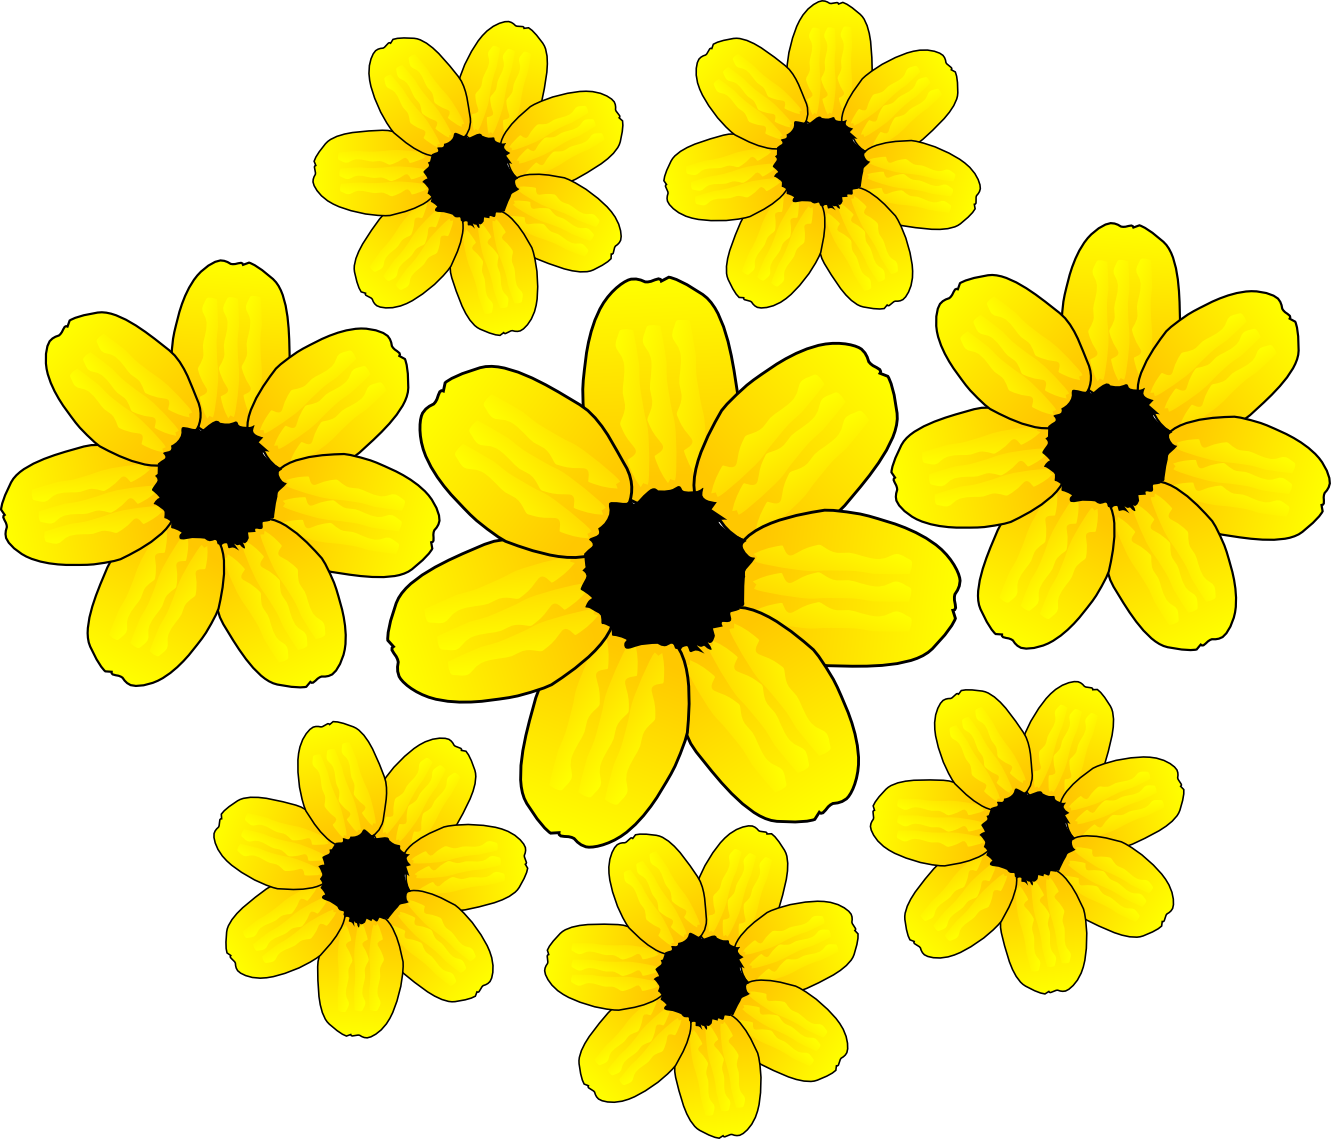 Flower clipart graphics. Flowers accents the clipartingcom